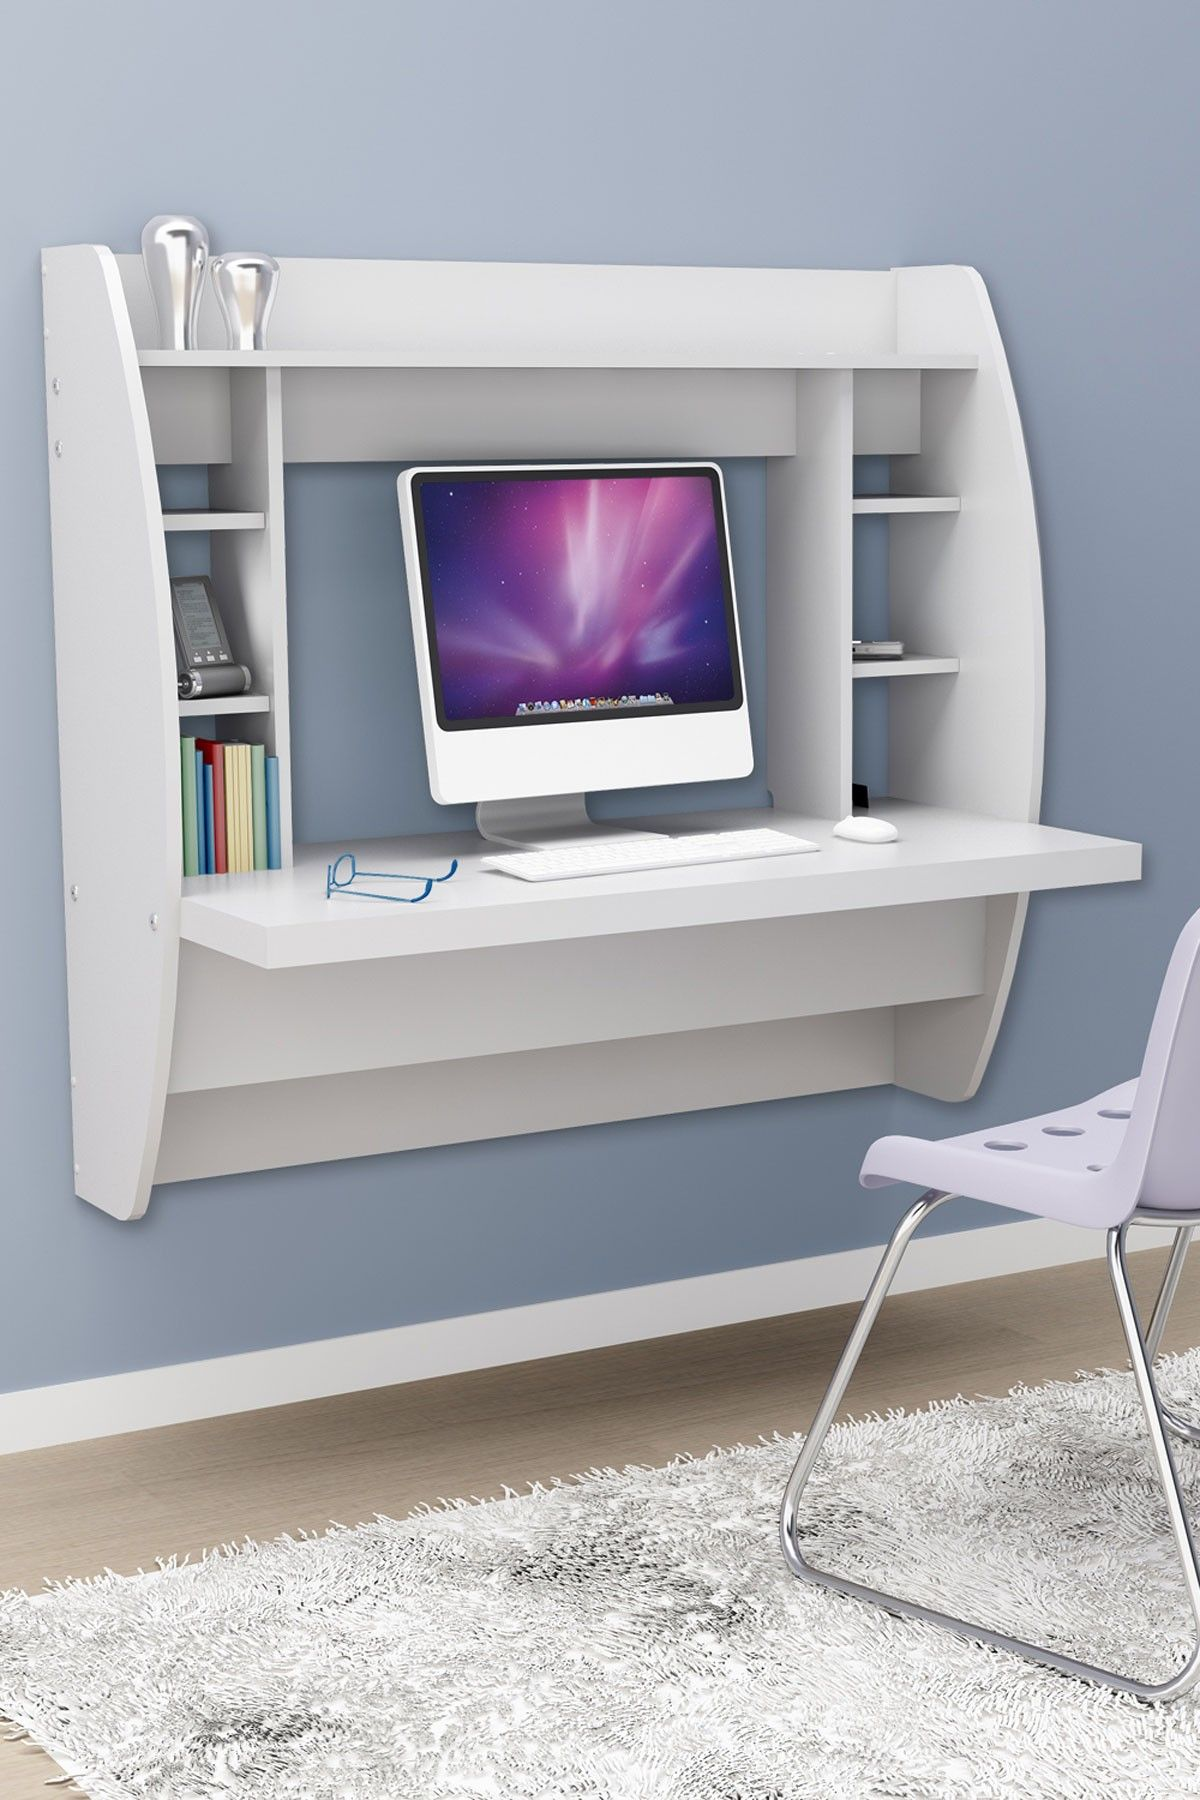 Charmant Prepac Small Space Innovations Floating Desk With Storage   White